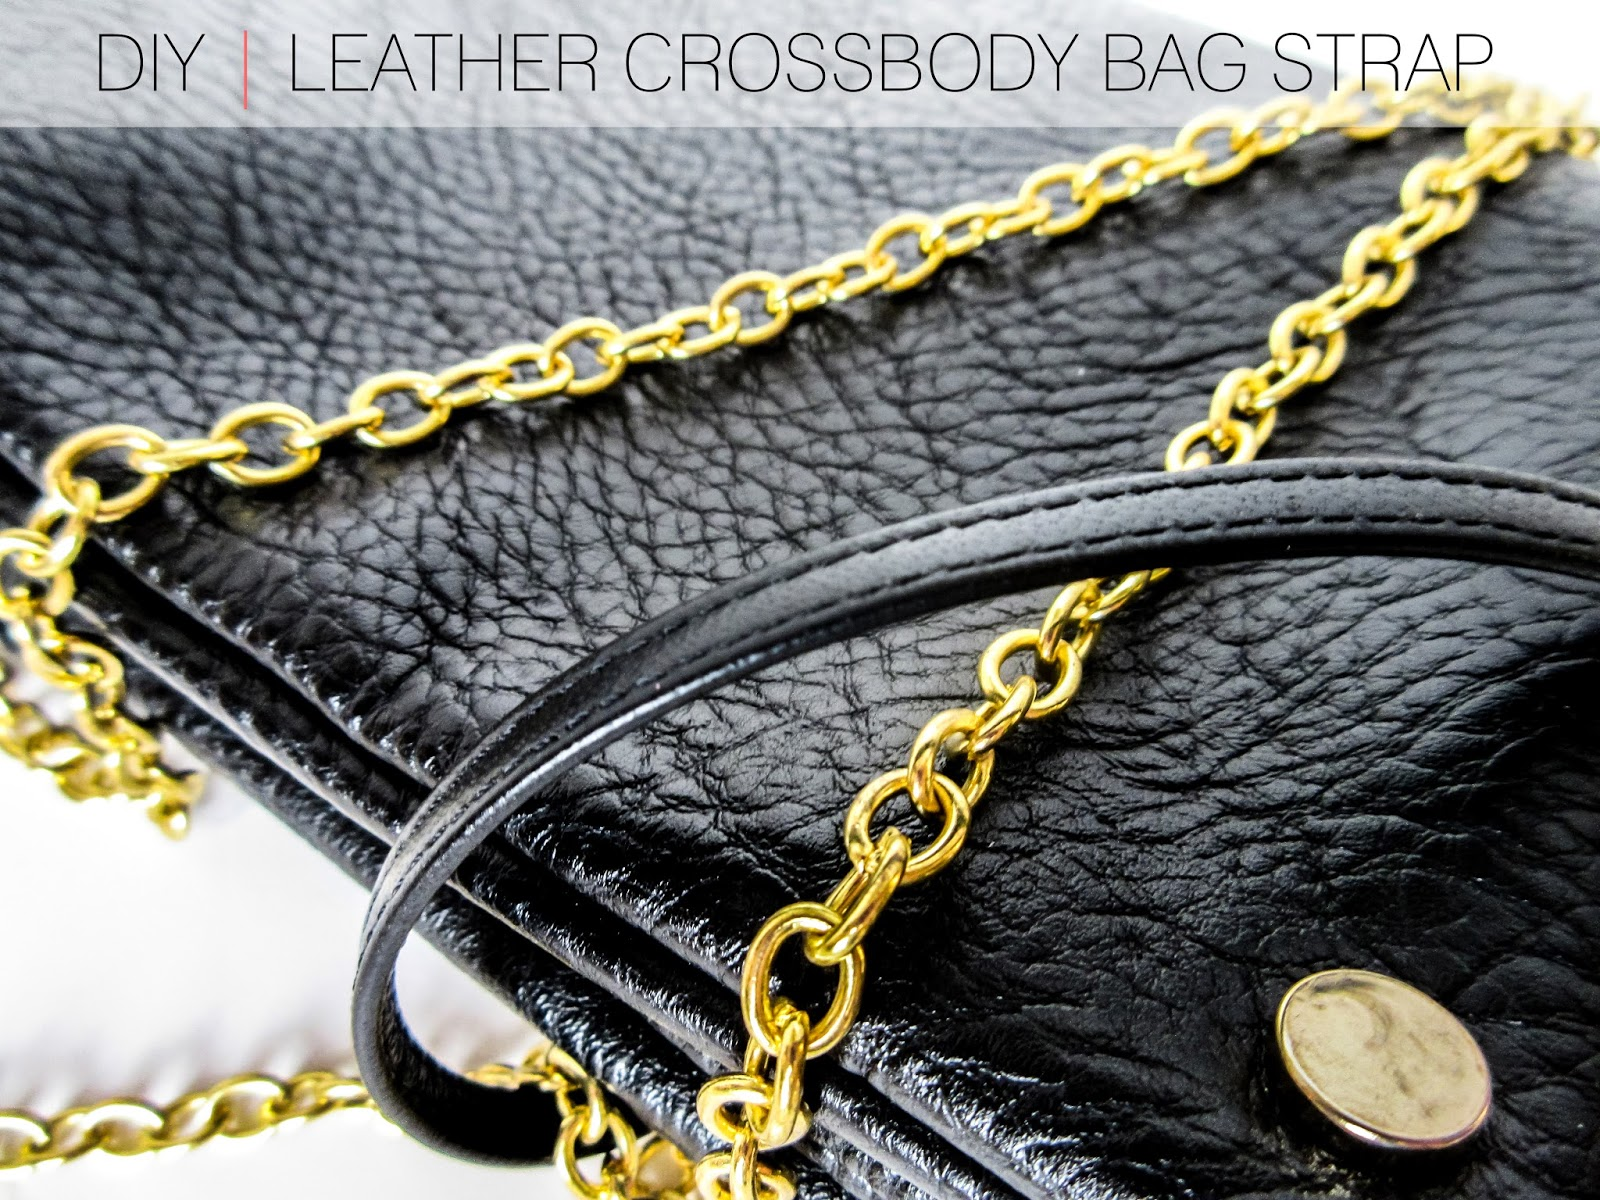 DIY Leather Chain Crossbody Bag Strap